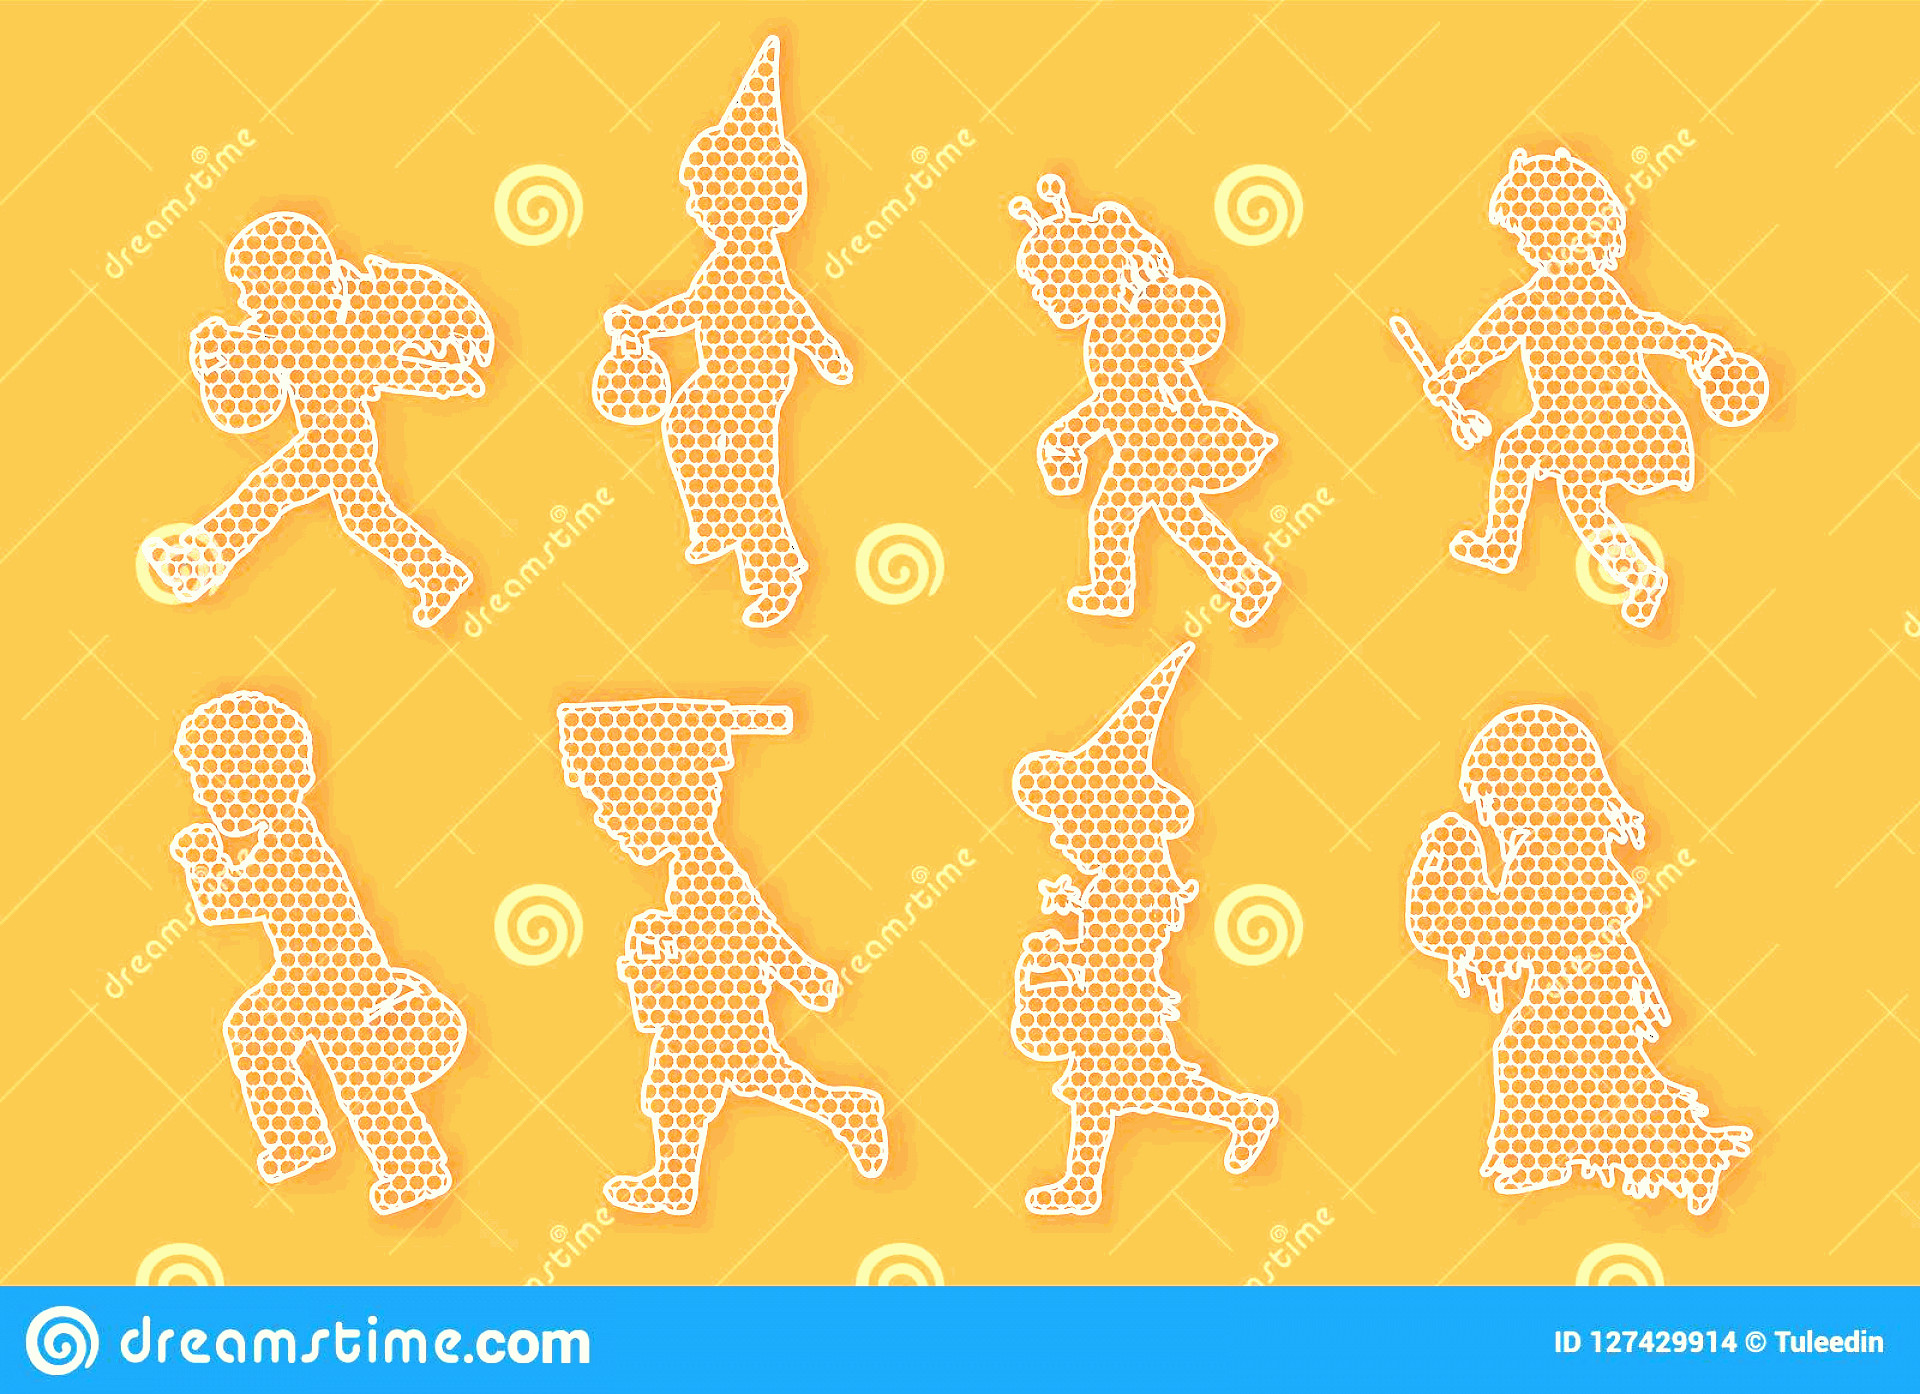 Football Laces Vector Silhouette: Set Children Vector Running Halloween Nightlace Set Children Lace Vector Running Halloween Night Children Image